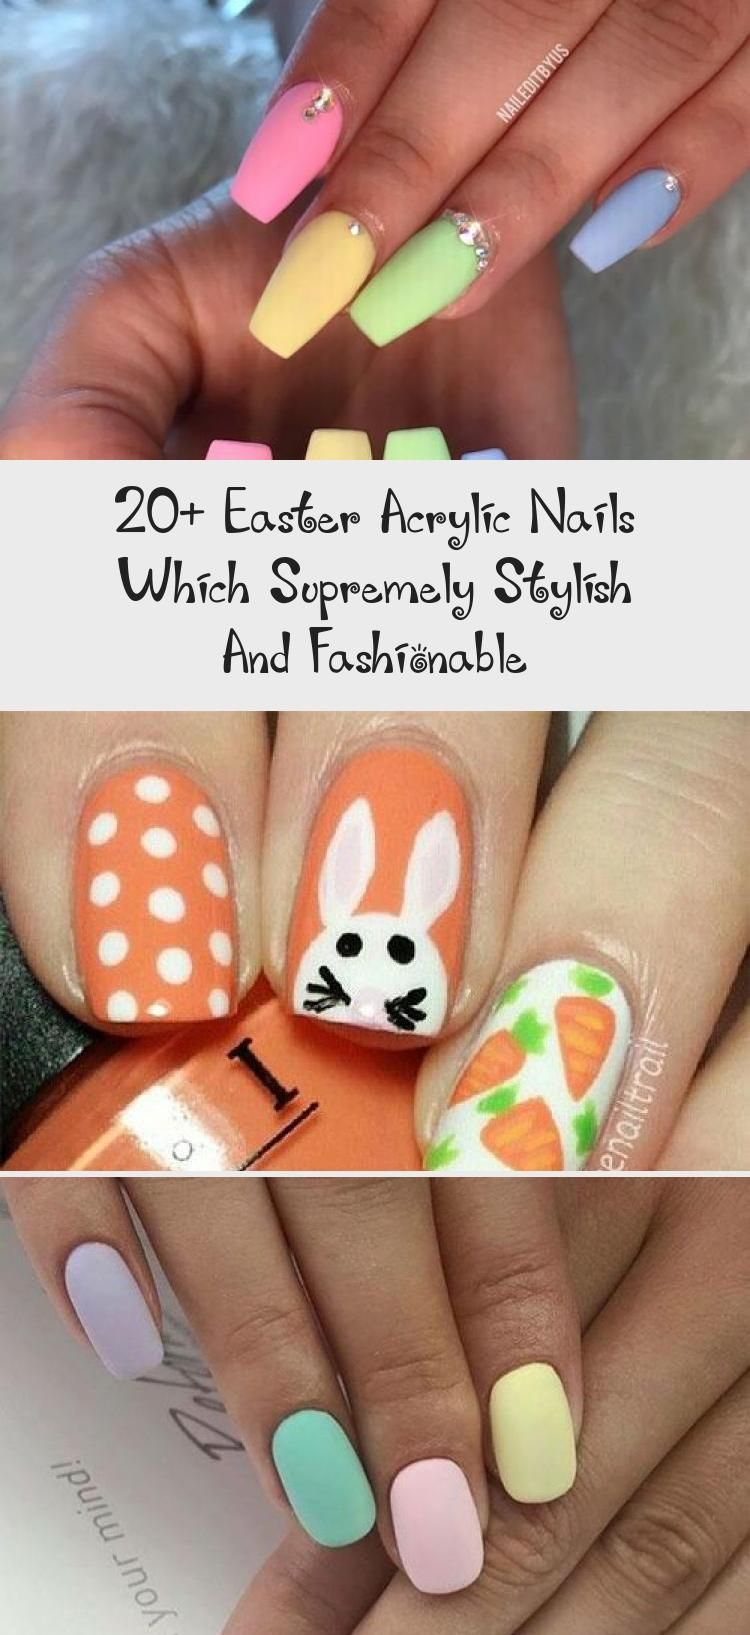 Photo of 20+ Easter Acrylic Nails Which Supremely Stylish And Fashionable – Nail Art Desing